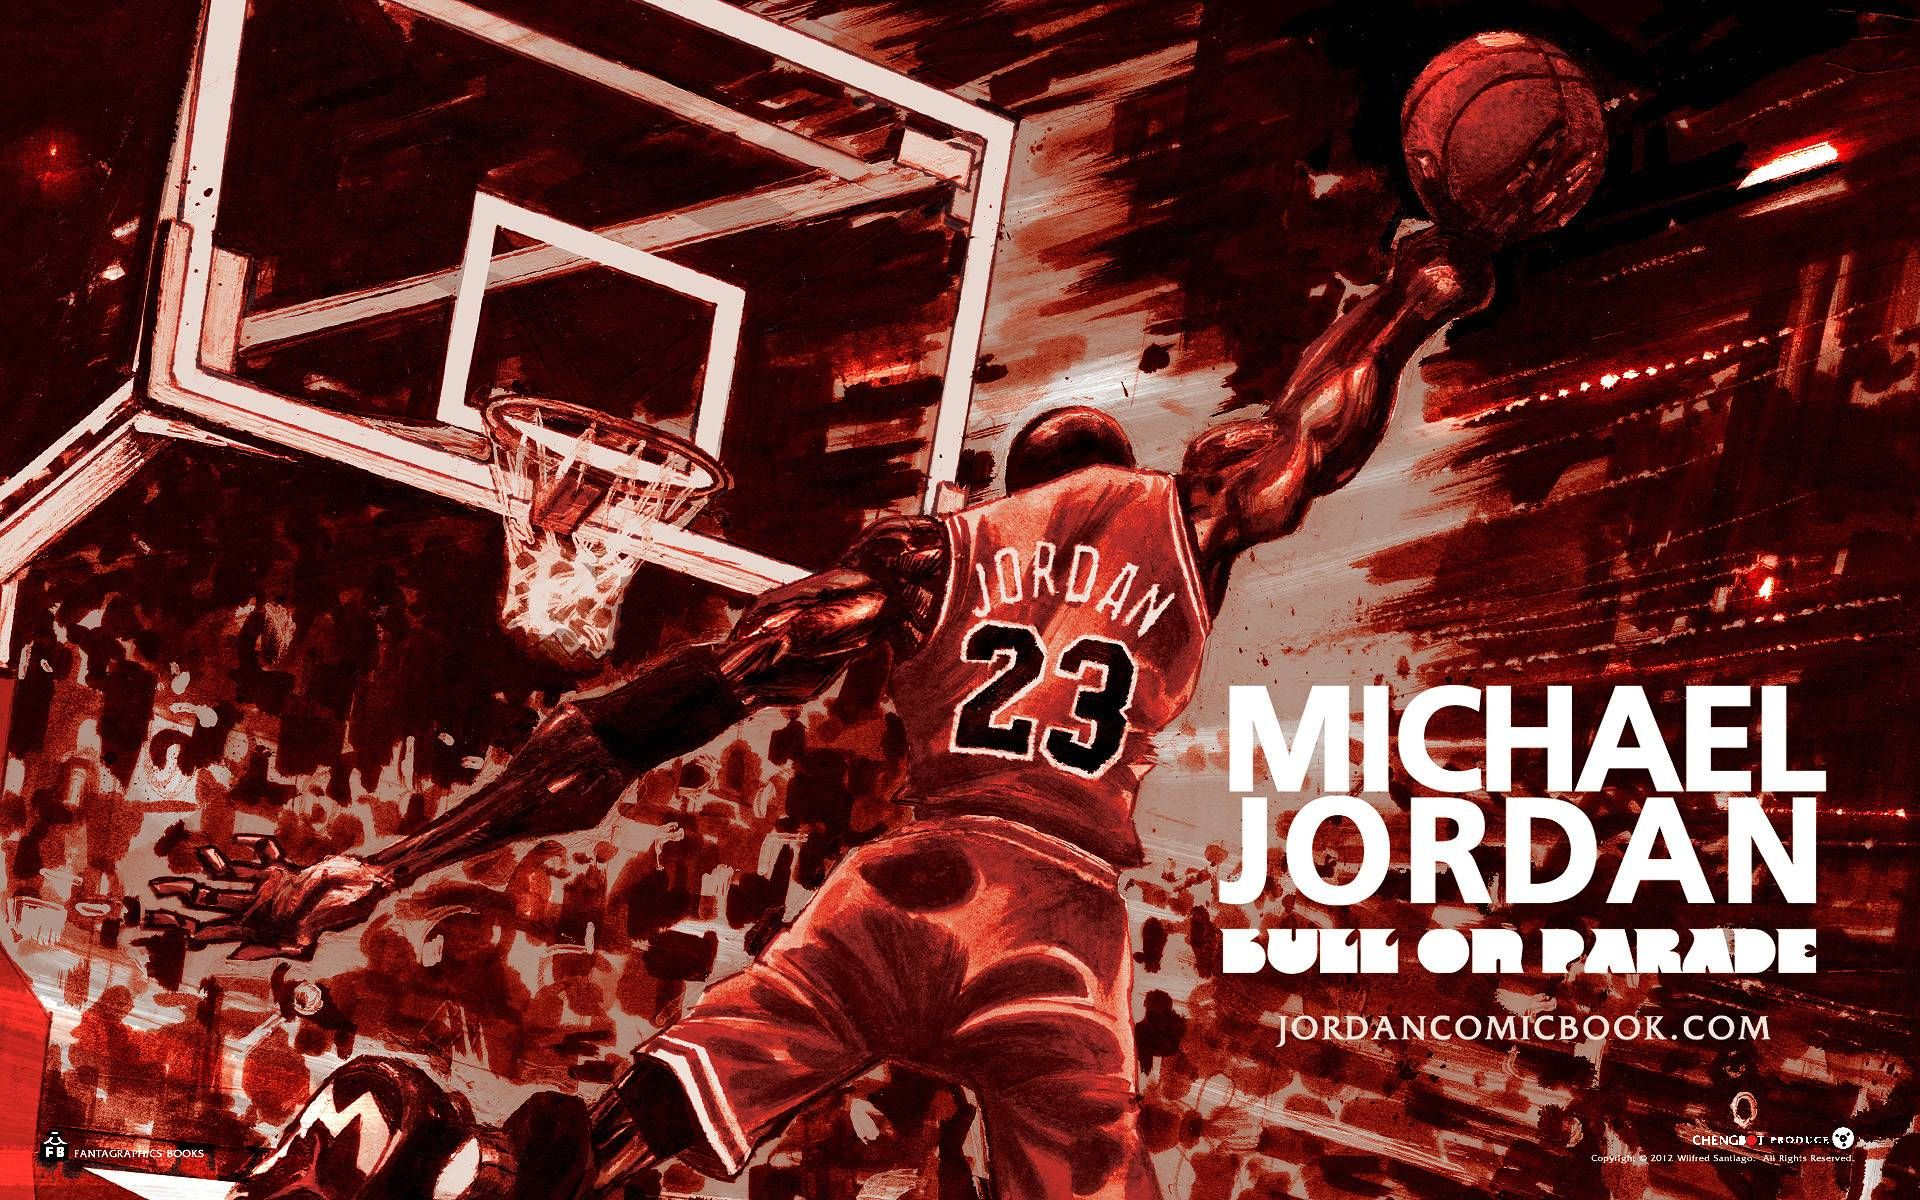 Michael Jordan 50th Wallpaper: Michael Jordan Iphone Wallpapers TELGRAPHIC Swag 1920×1200